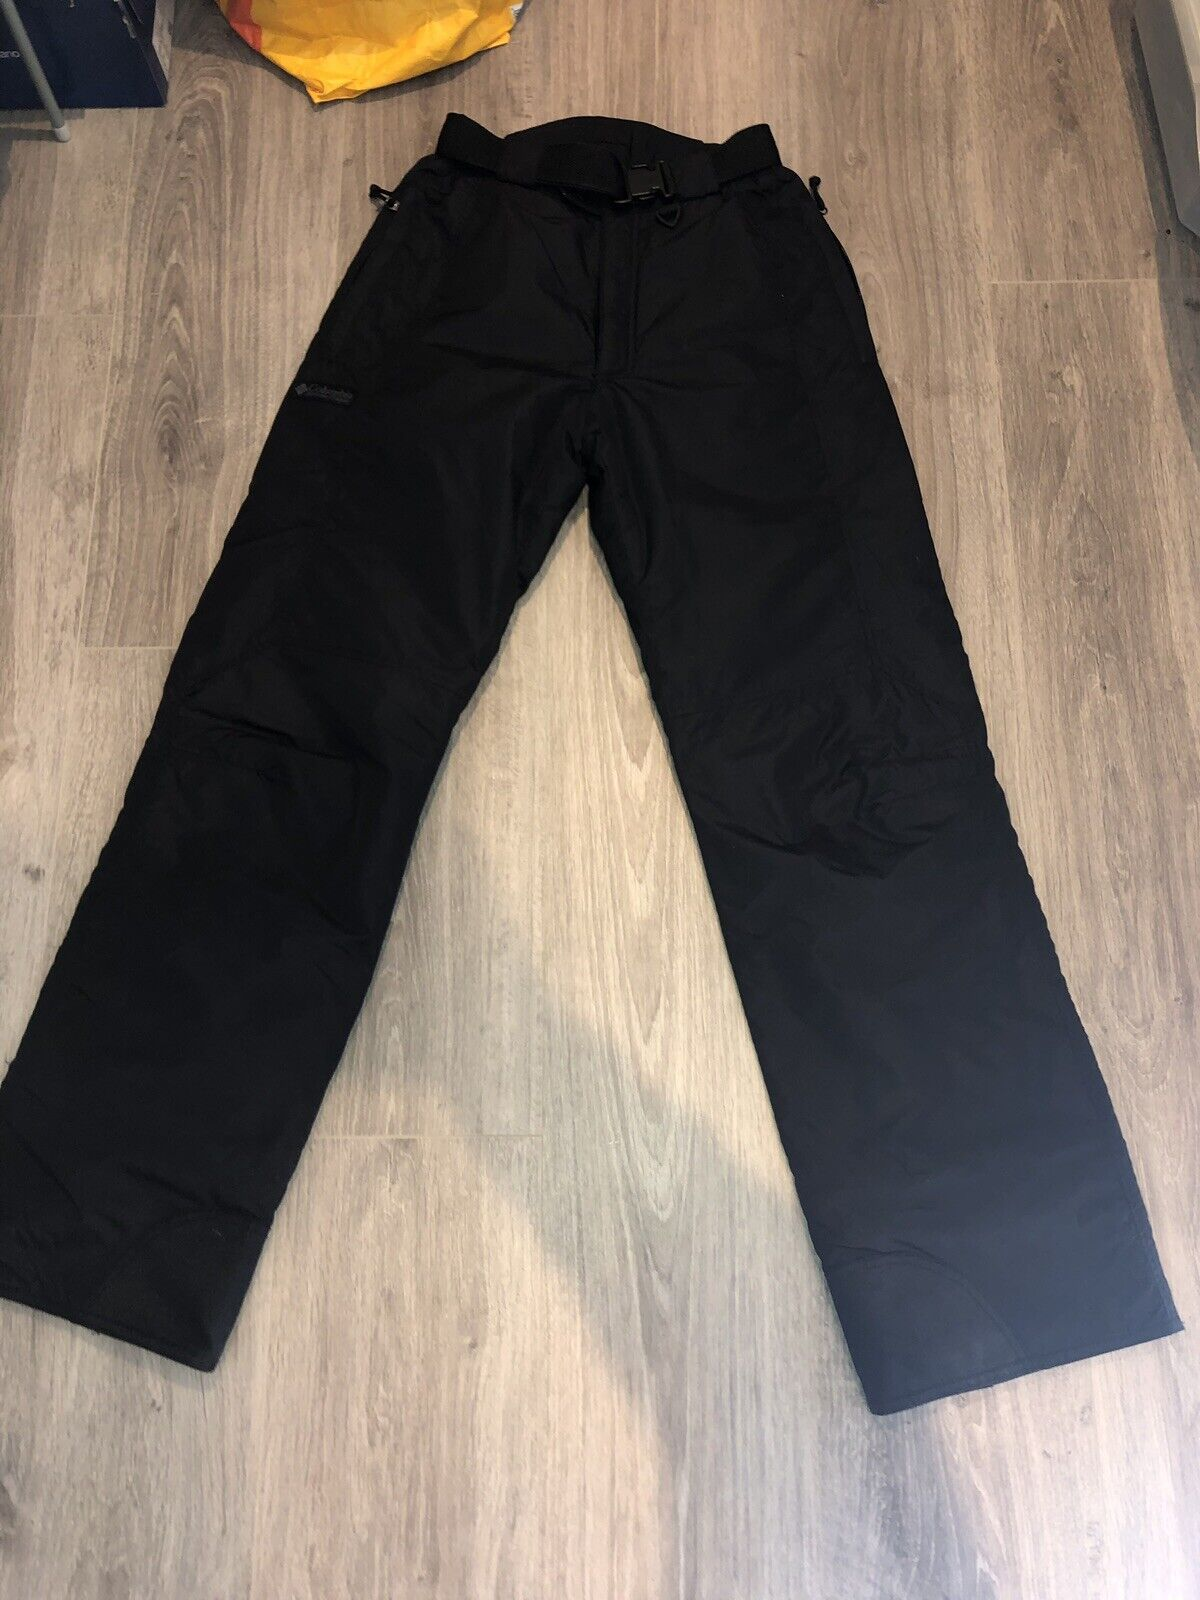 Columbia Ski Trousers W30 L30.